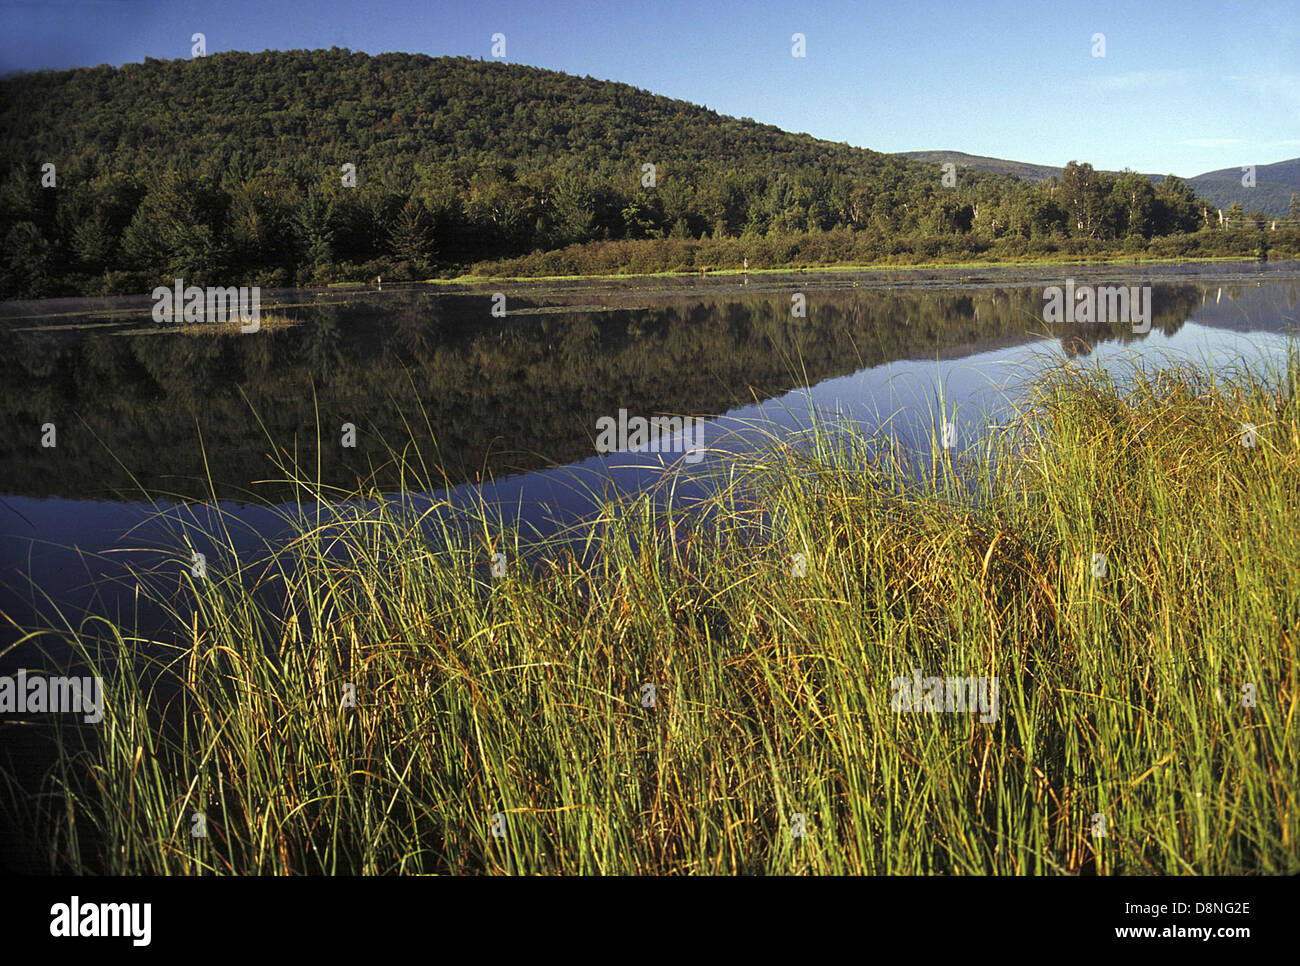 Wetland scene in the Catskills region of southern New York. - Stock Image